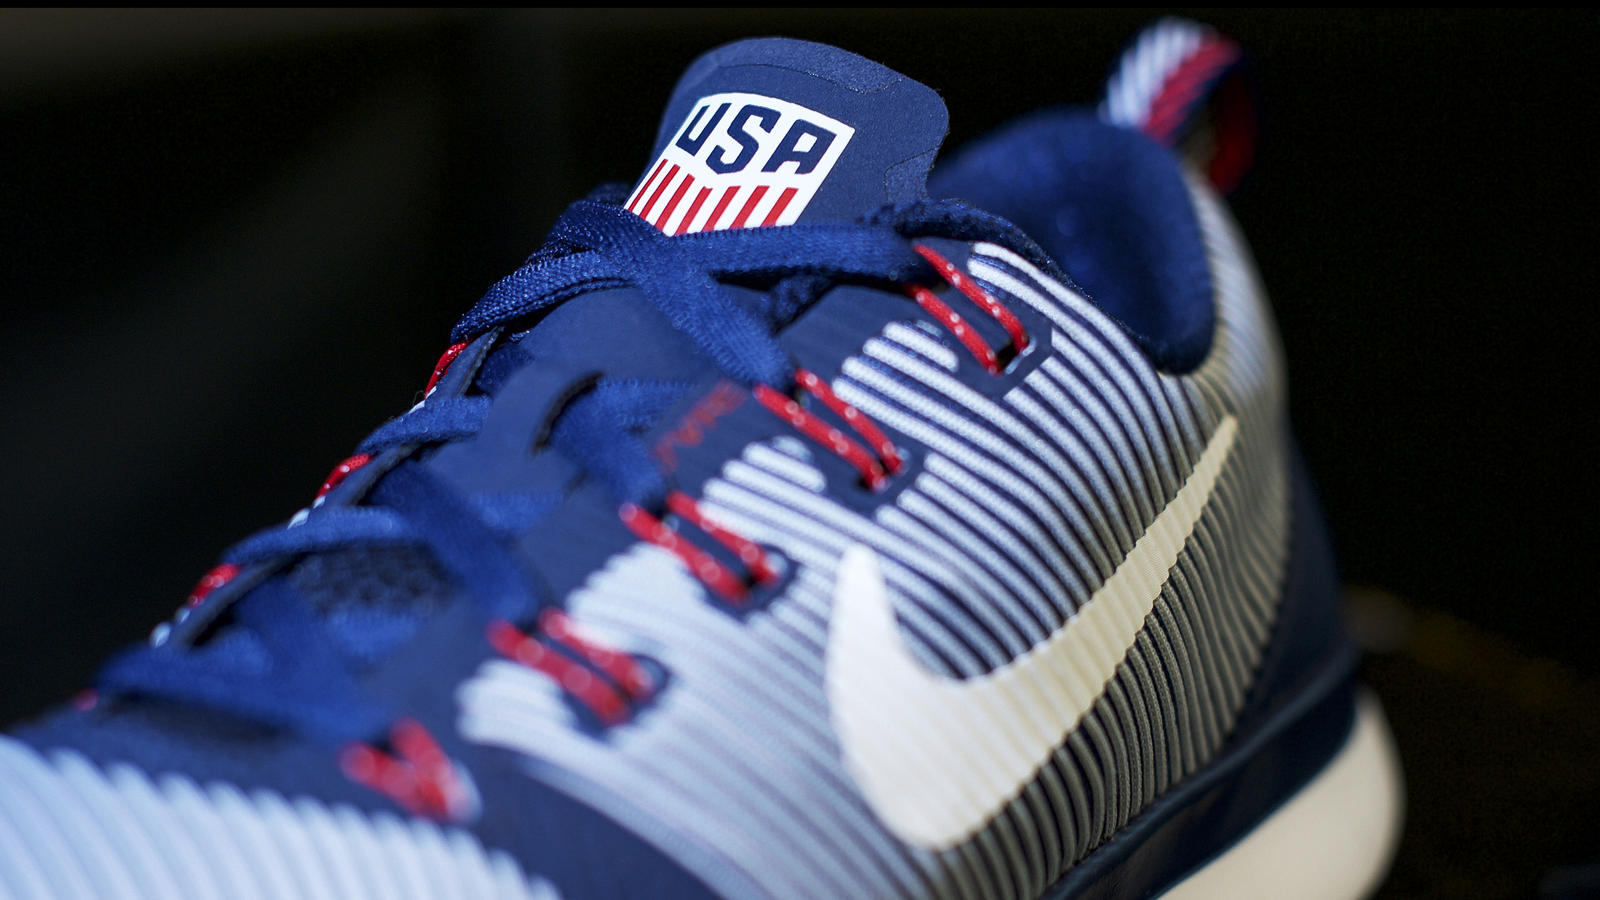 Usa trainer 1 hd 1600